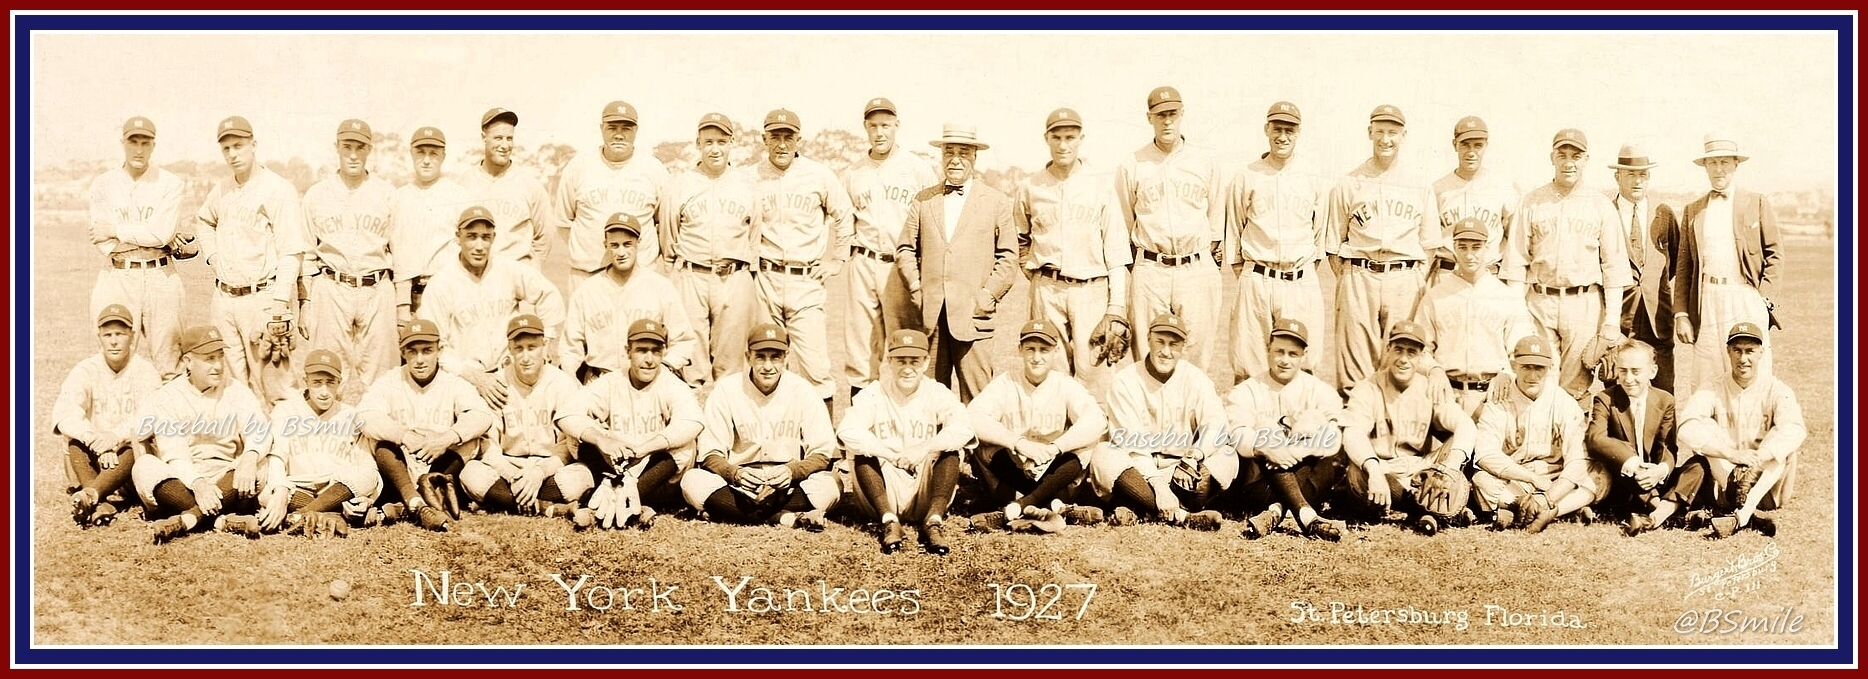 Pusateri Funeral Home's, Wayne County and East Rochester 1927 new york yankees team photo